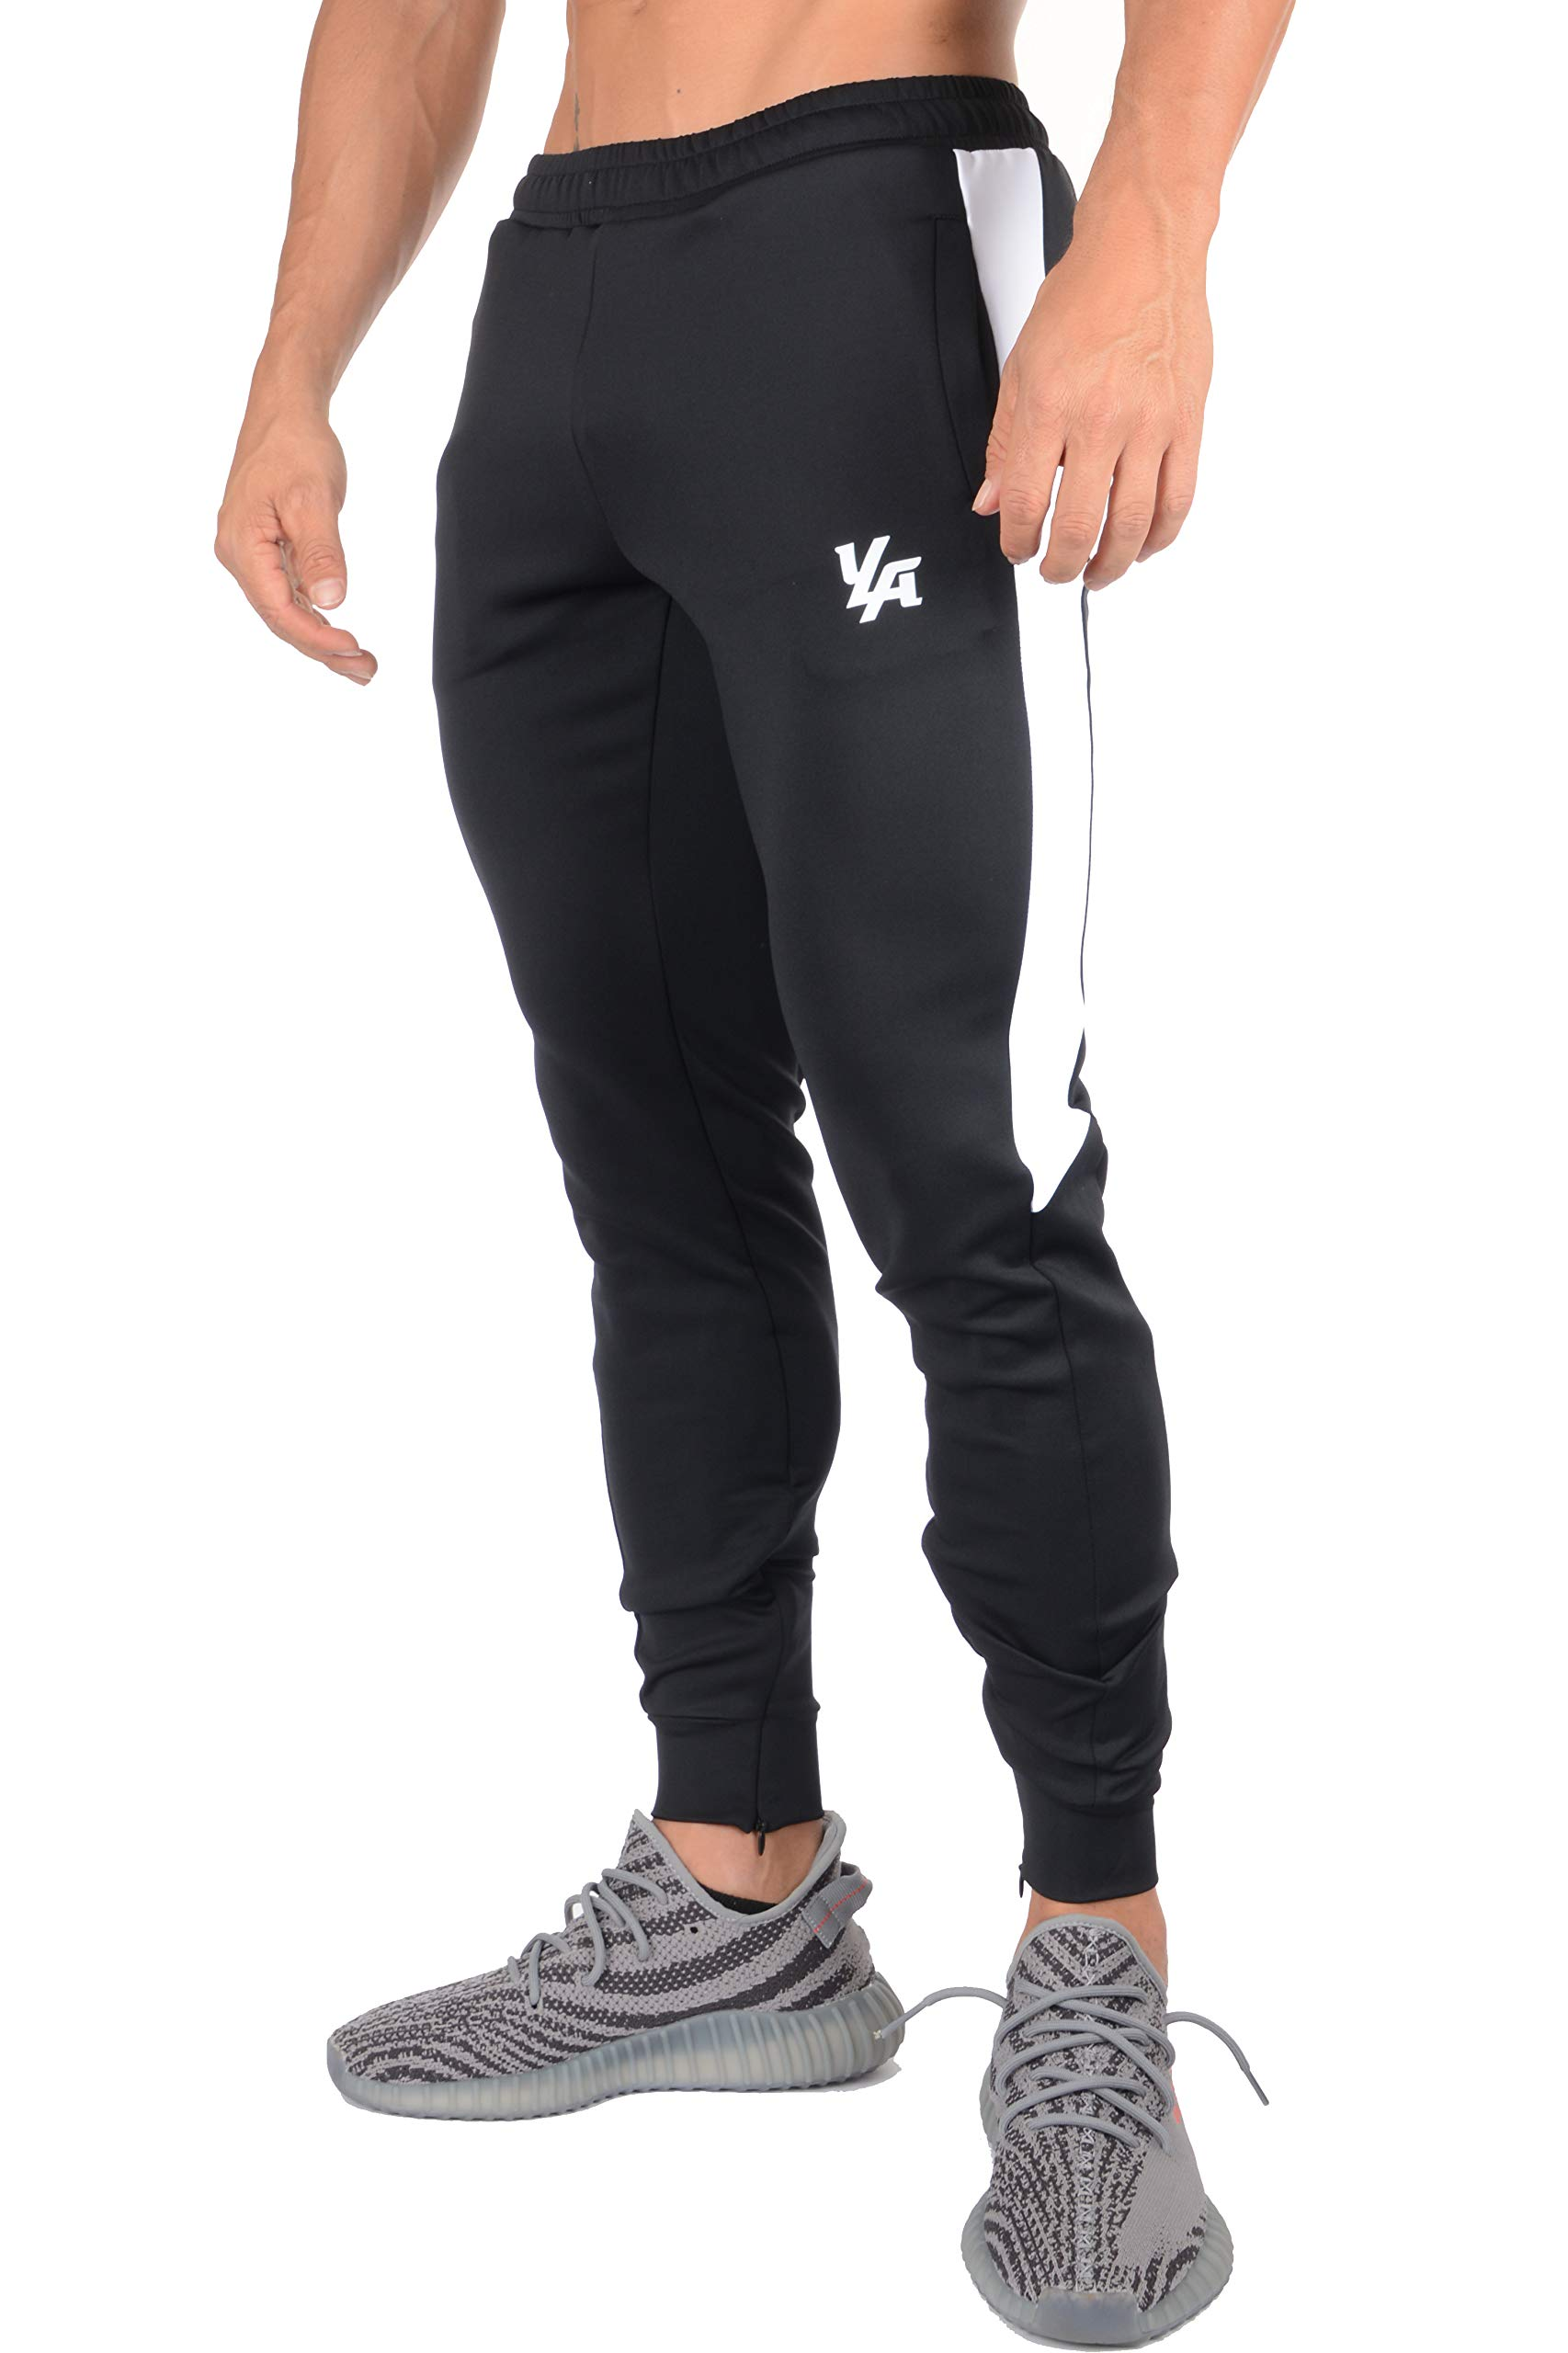 c723b55577 YoungLA Athletic Track Pants for Men Joggers Slim Fit Workout Gym Lounge  215 product image